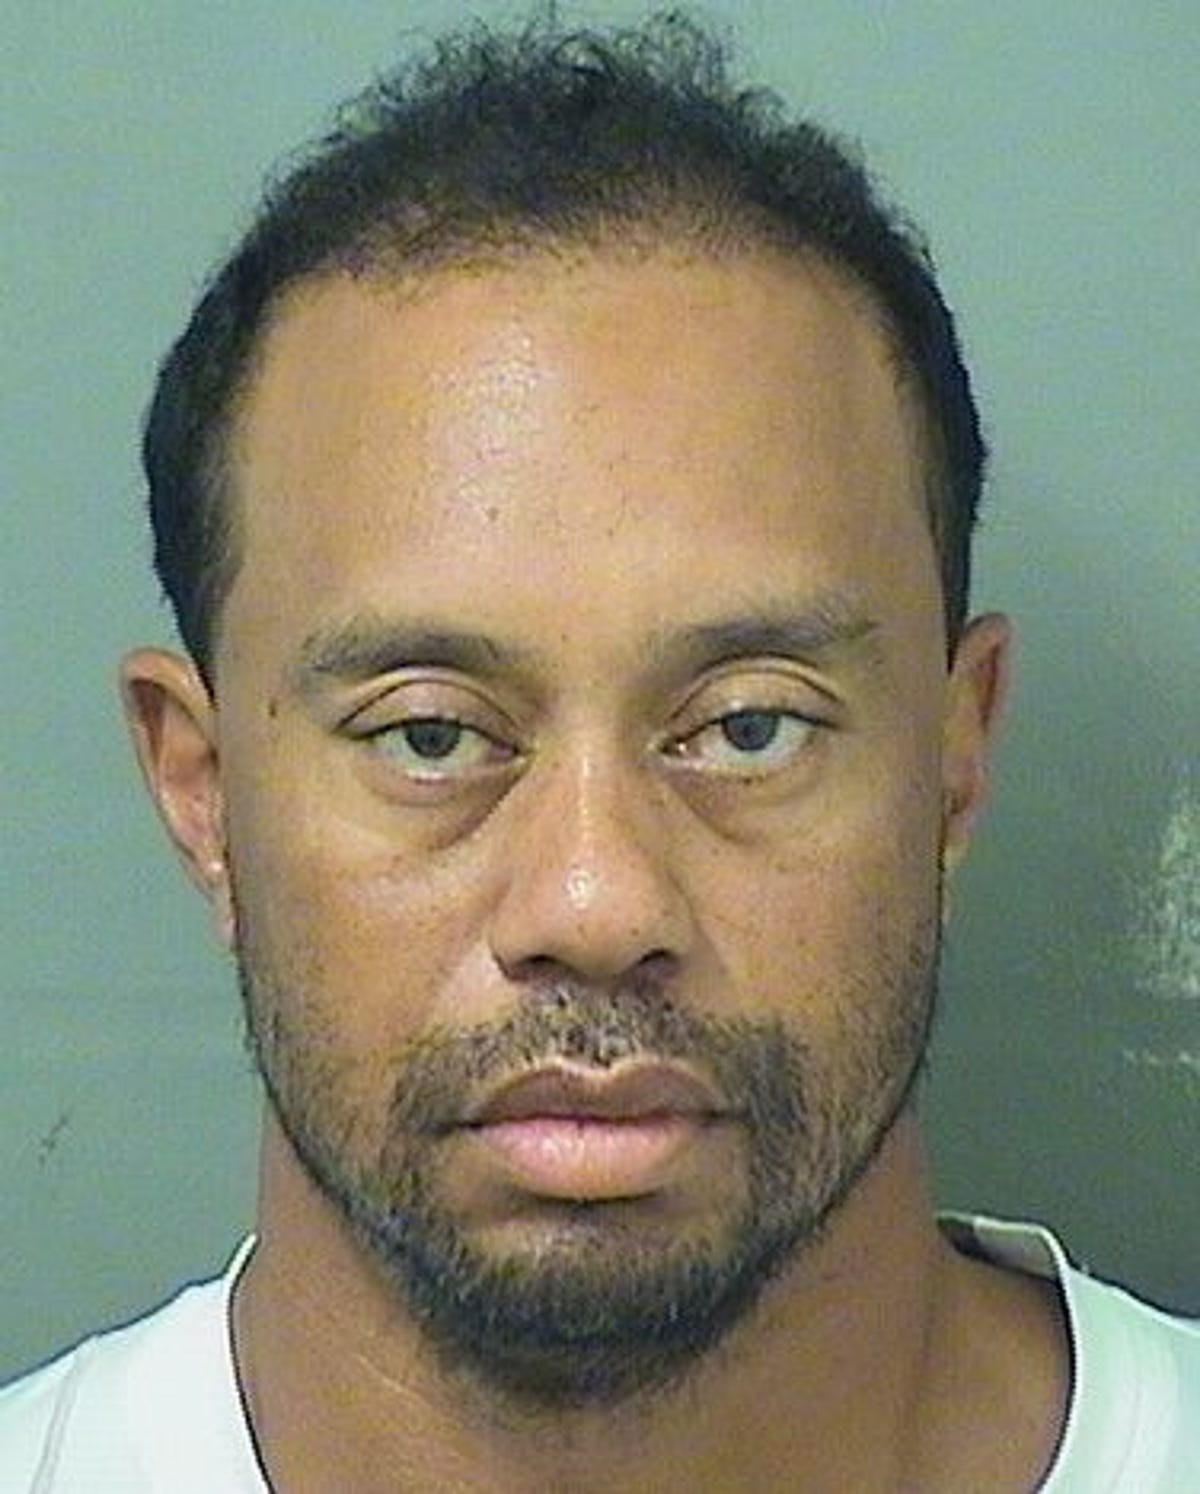 Tiger Woods says reaction to medication was cause of DUI arrest